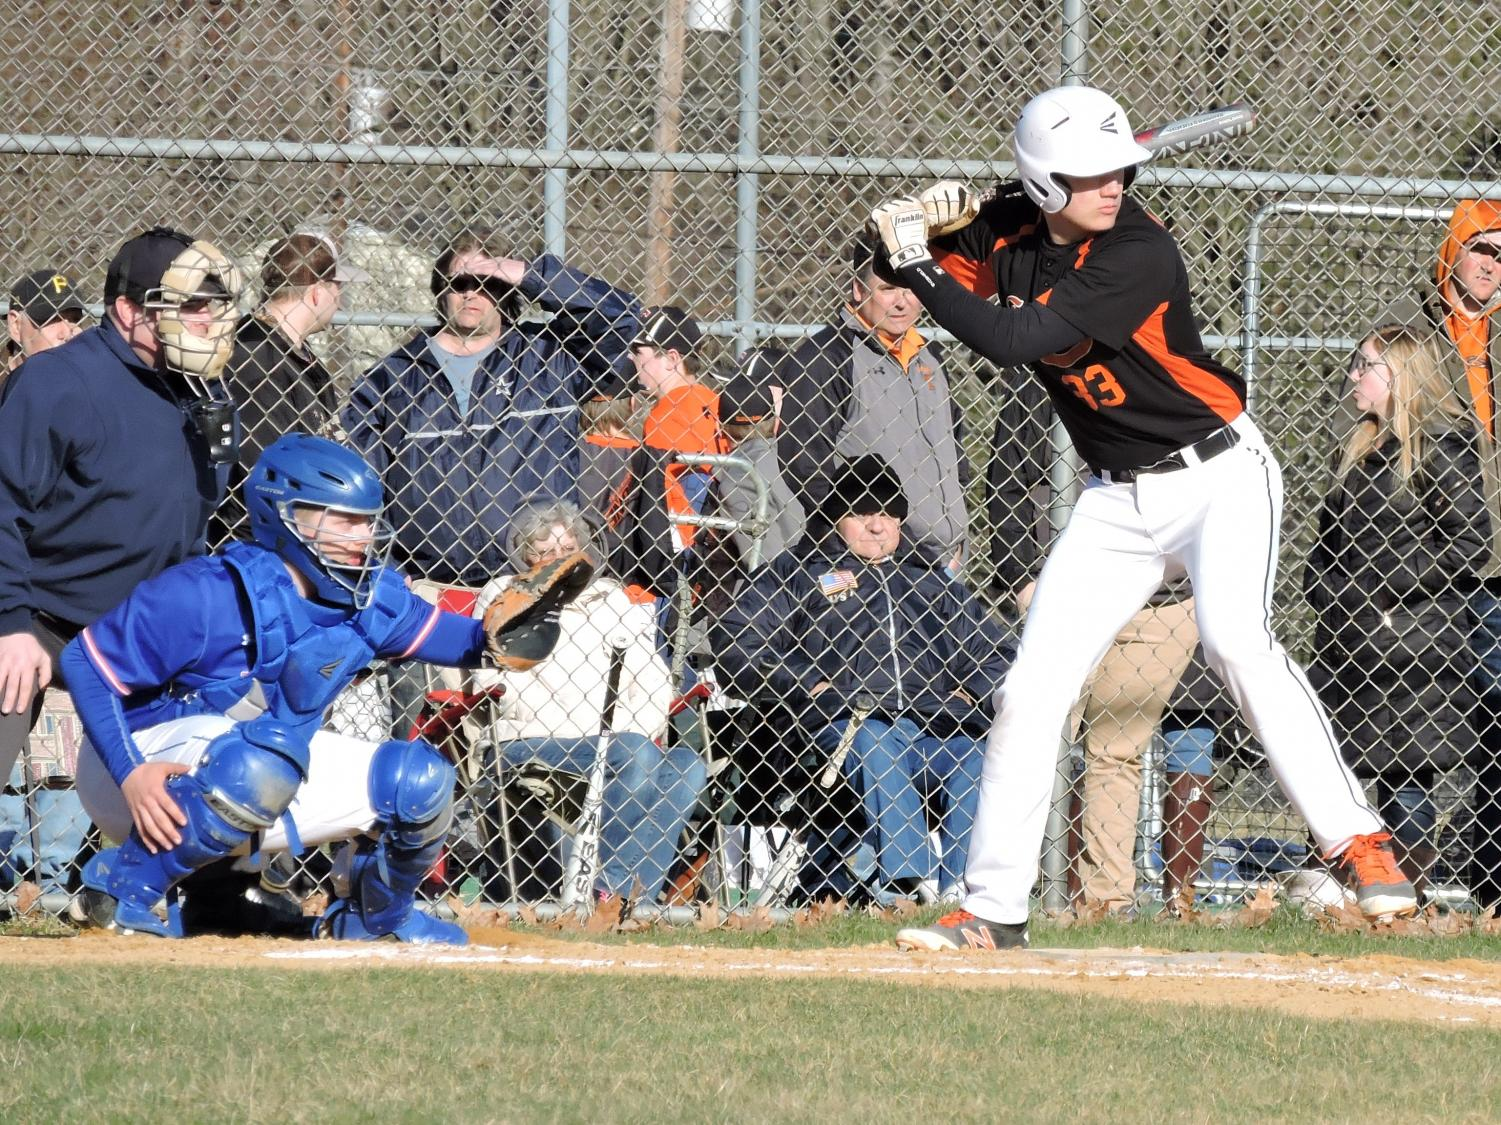 Cory Lehman has been a key contributor for the Tyrone varsity baseball team for four years.